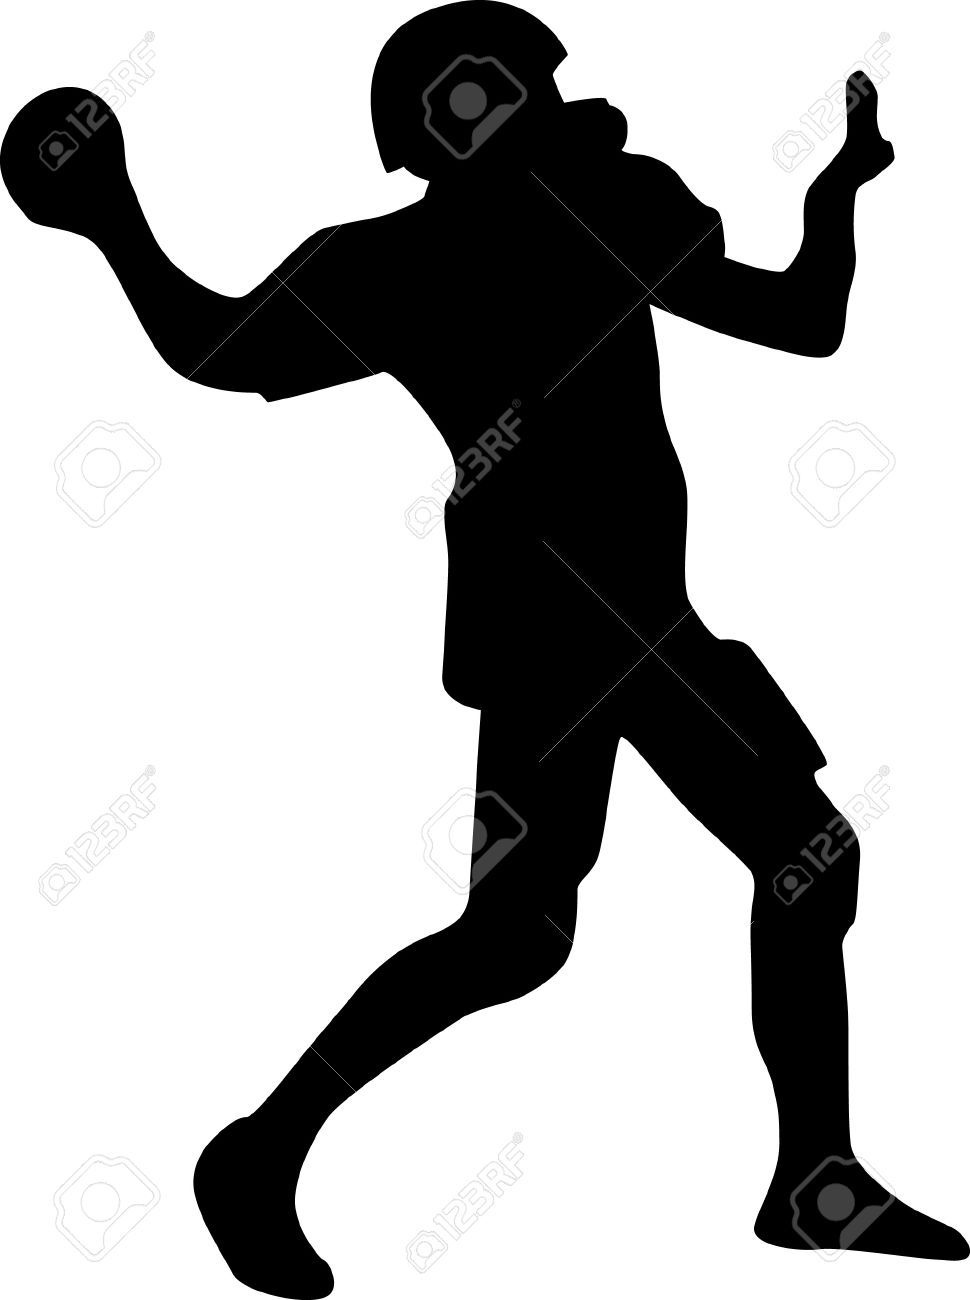 Image Result For Outline Of Football Player Football Players Football Human Silhouette